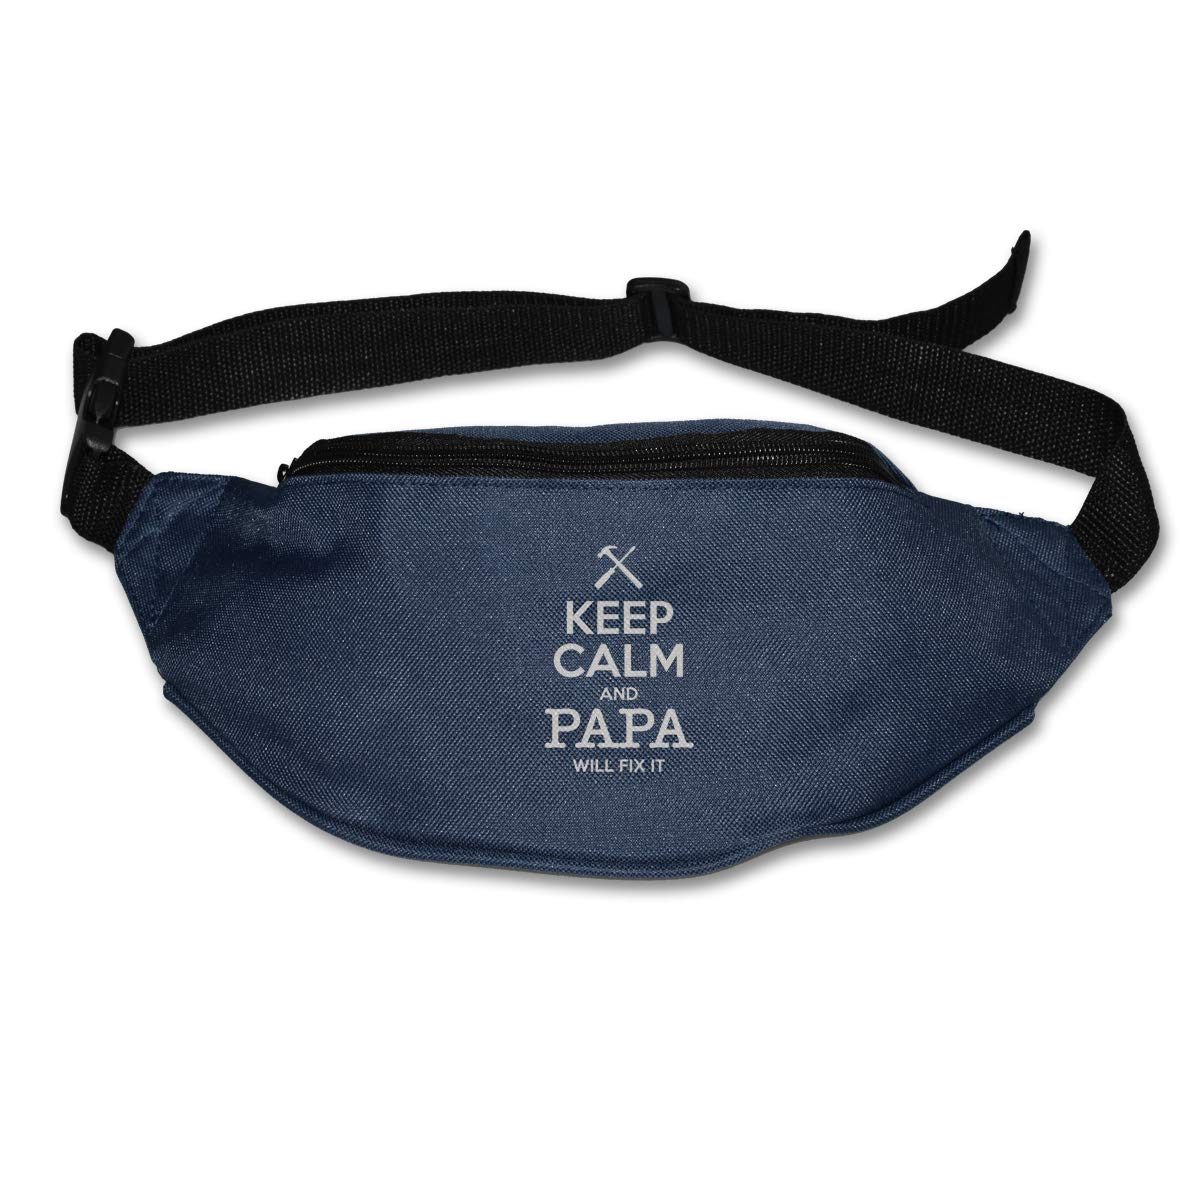 Keep Calm And Papa Will Fix It Sport Waist Bag Fanny Pack Adjustable For Run